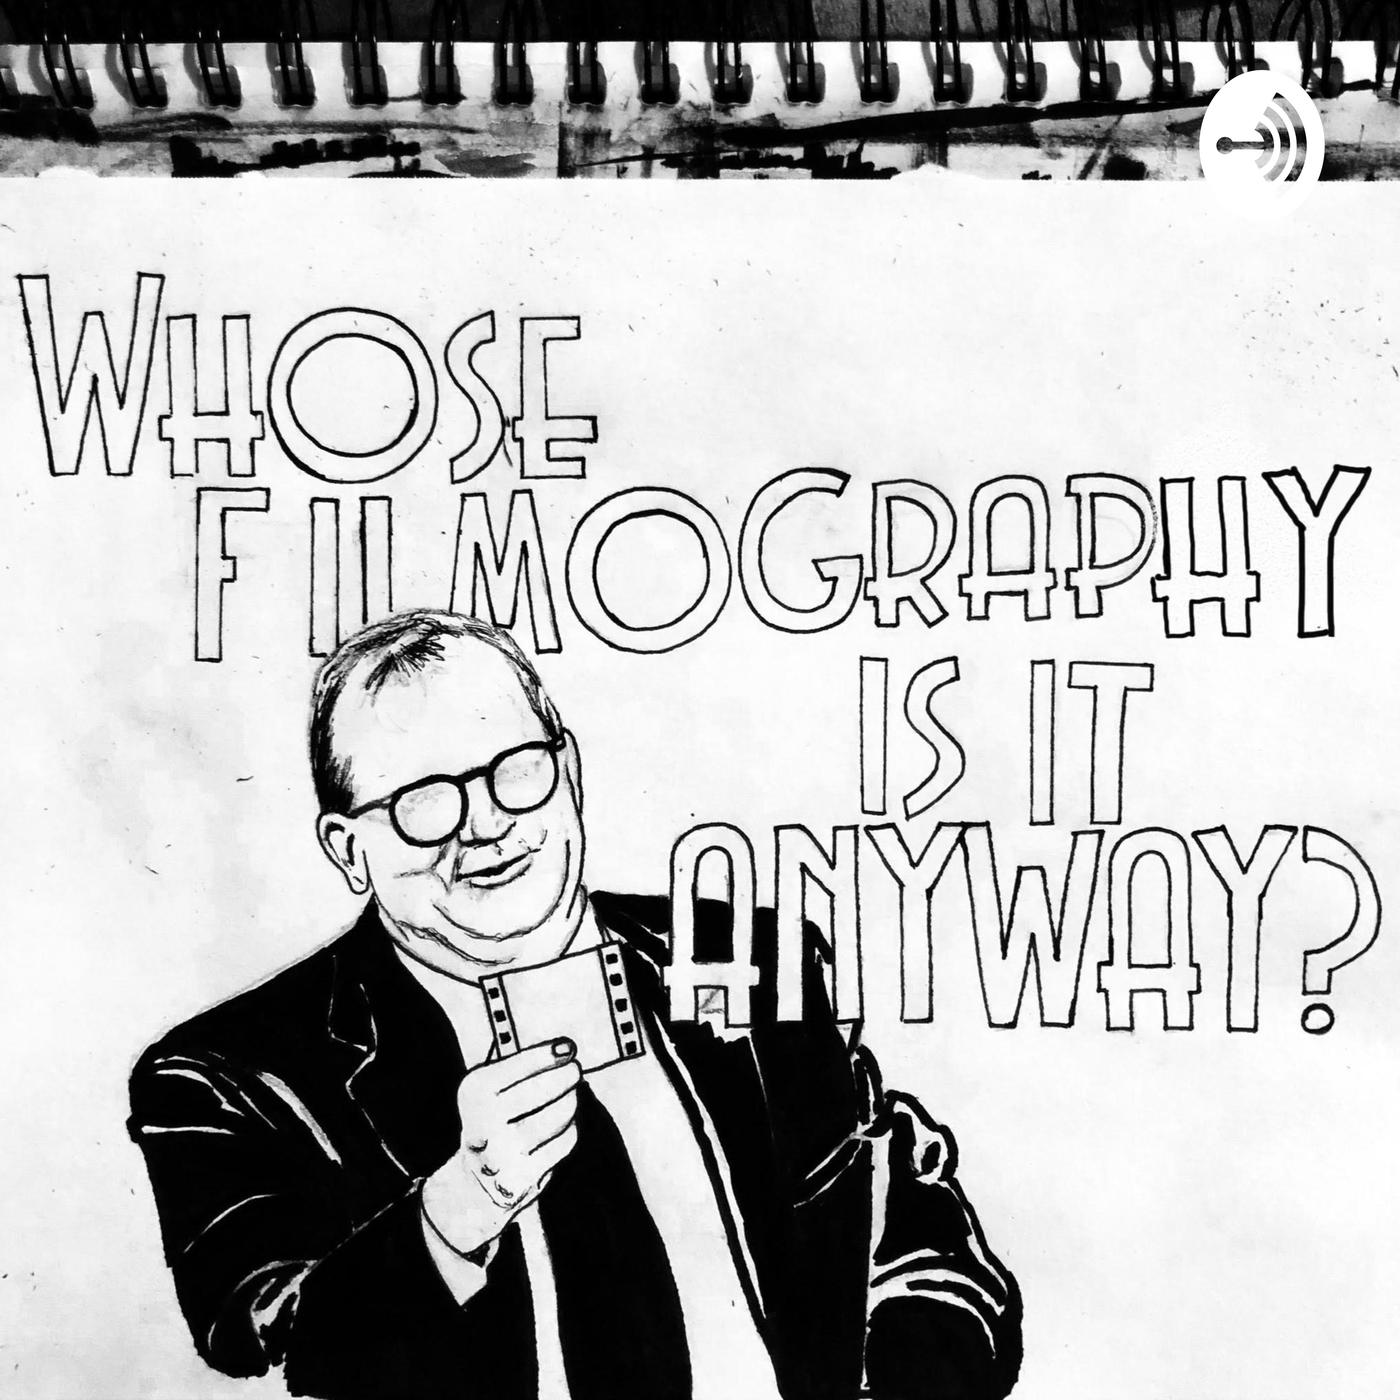 Whose Filmography Is It Anyway Podcast Steven Mellina Listen Notes May 2, 1992), better known online as mr. listen notes